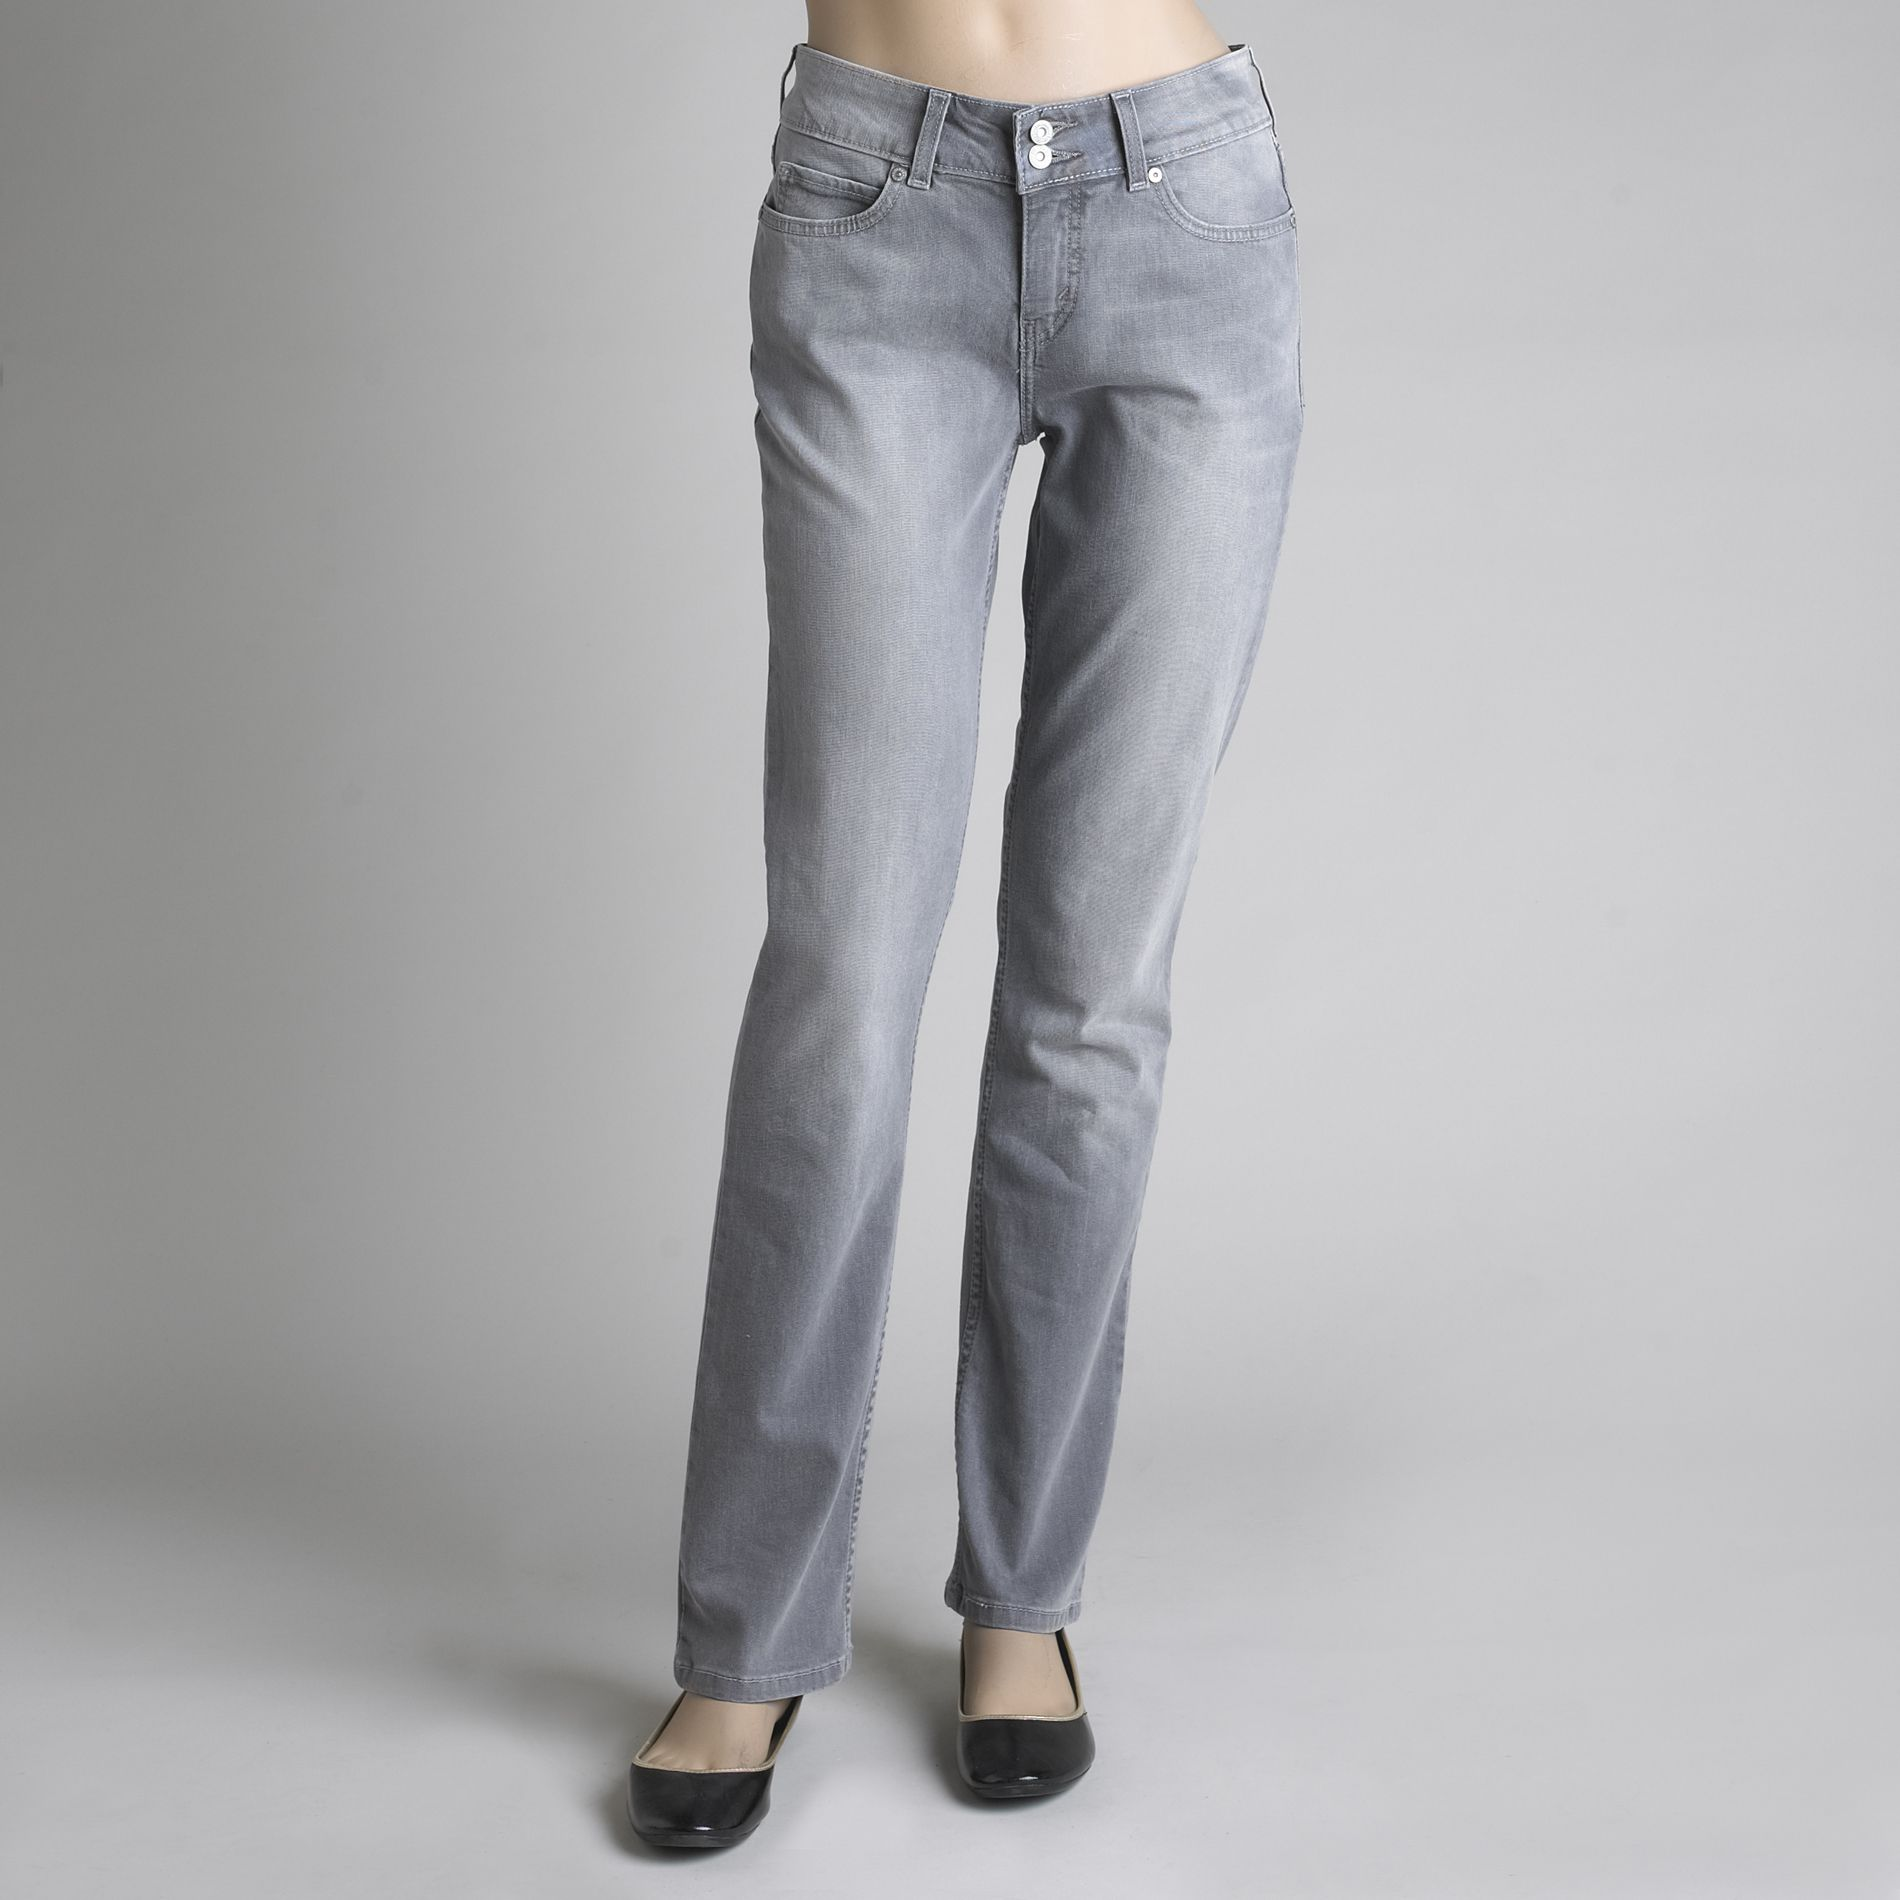 Levi's ® Women's 526™ Slender Fit Straight Leg Jeans at Sears.com